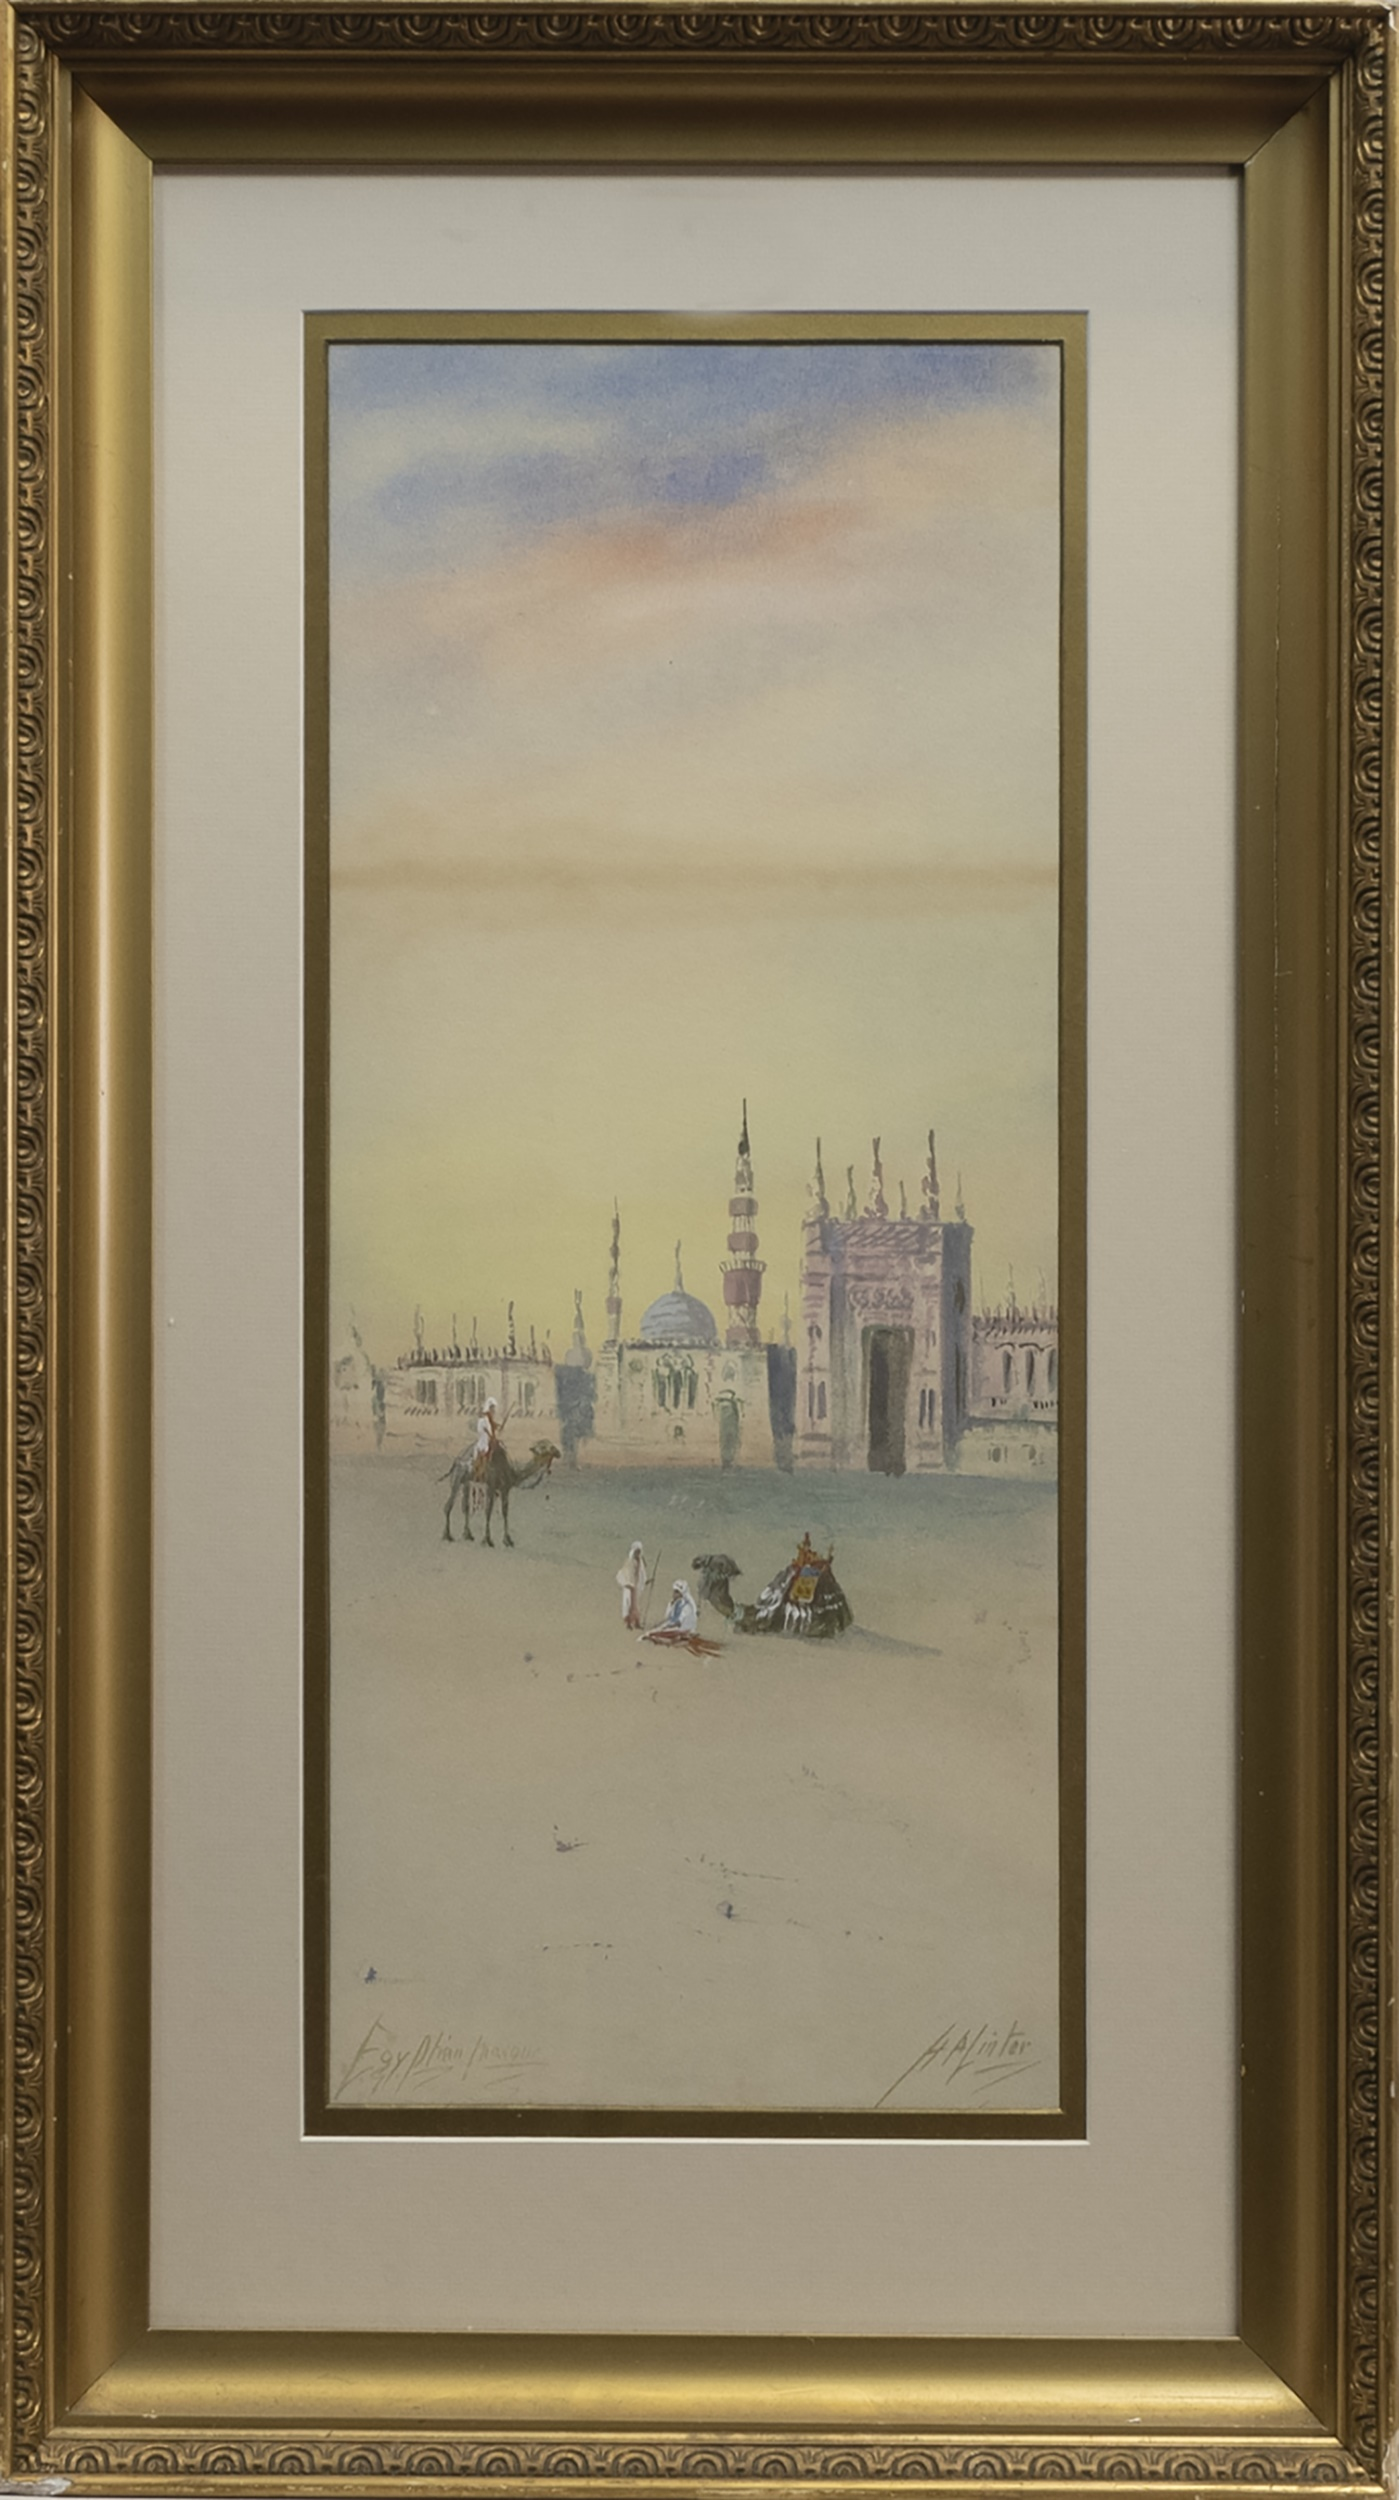 A PAIR OF MIDDLE EASTERN WATERCOLOURS BY H. LINTOR - Image 2 of 2